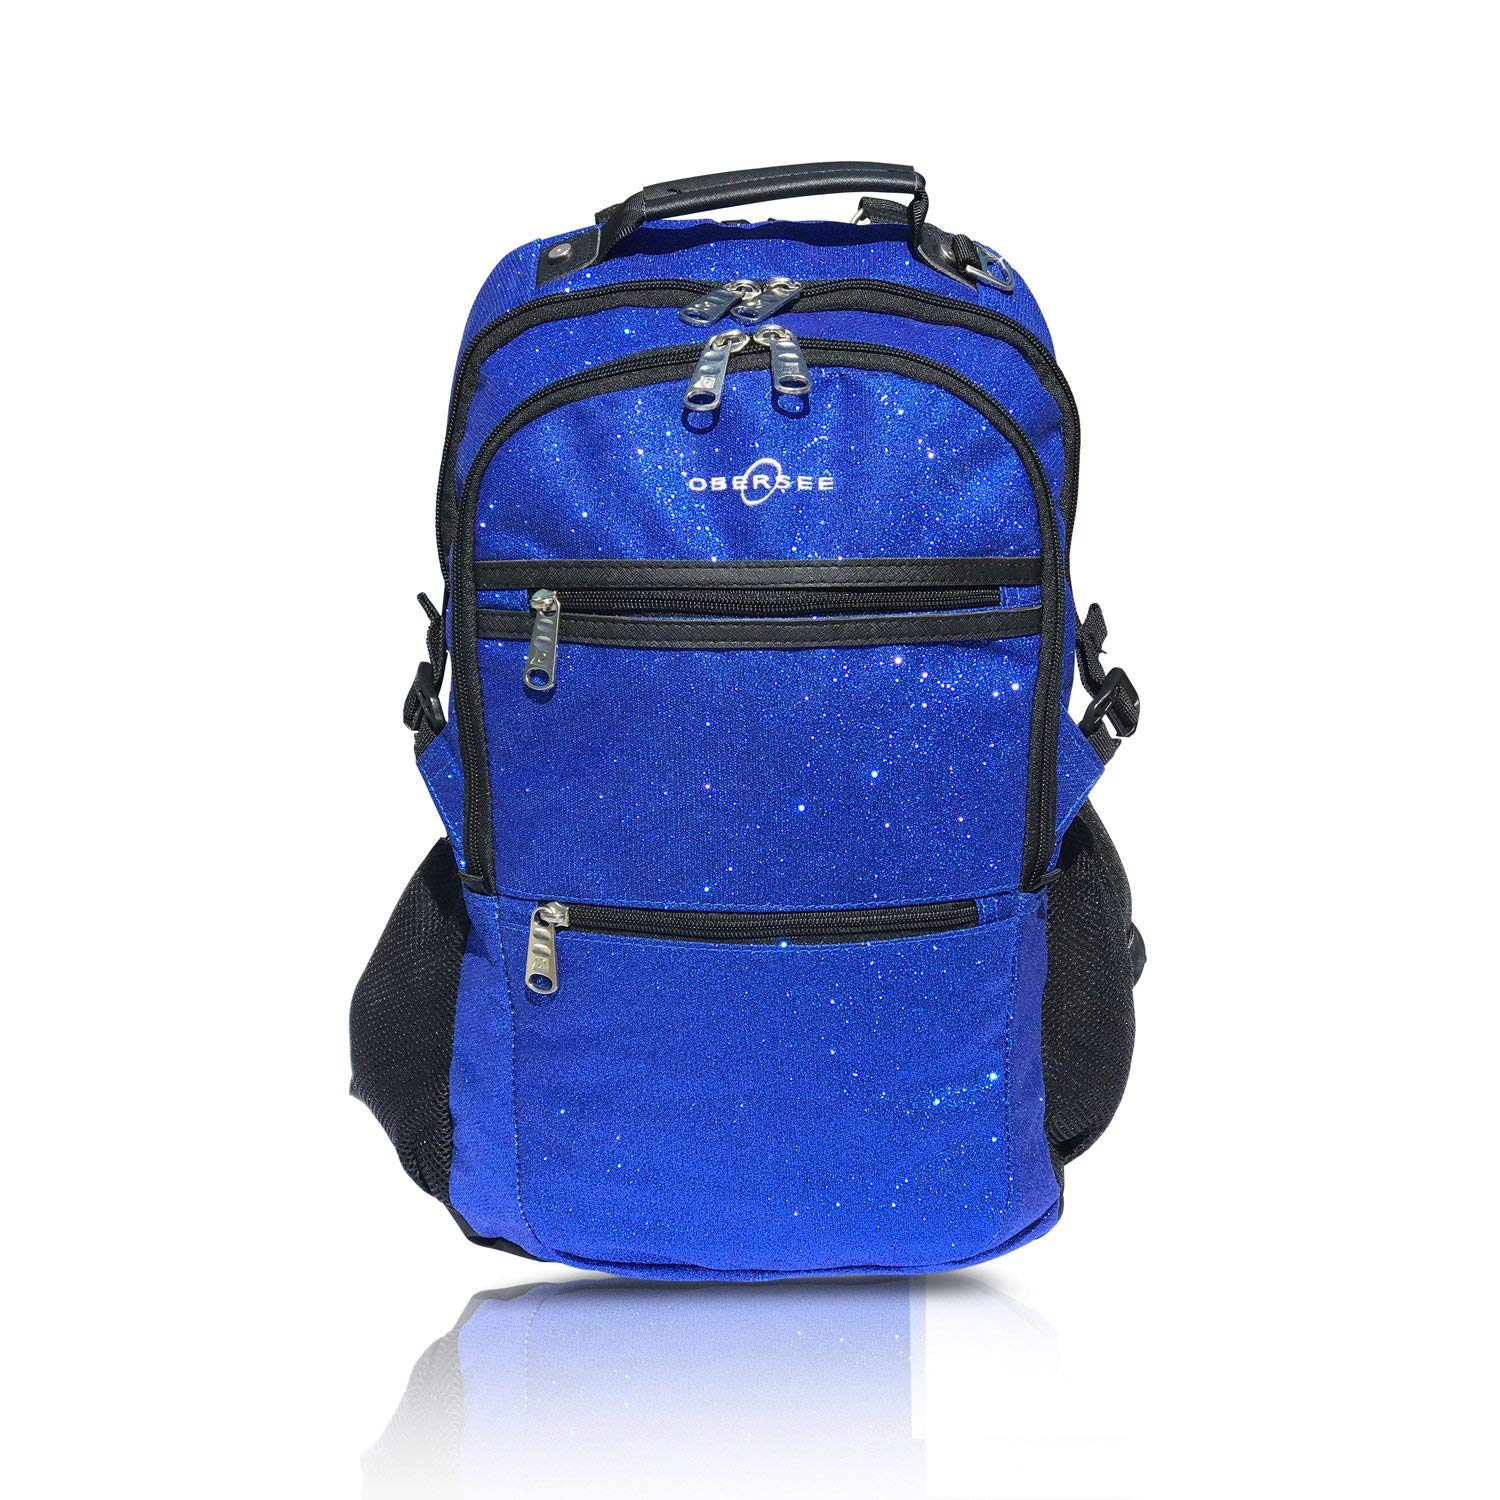 633d567b90c8 Sparkle Dance and Gymnastics Bag for Girls, Women, and Dancers, Comfy and  Durable Backpack with Spacious Pockets and Laptop Compartment, Measures 7  in ...